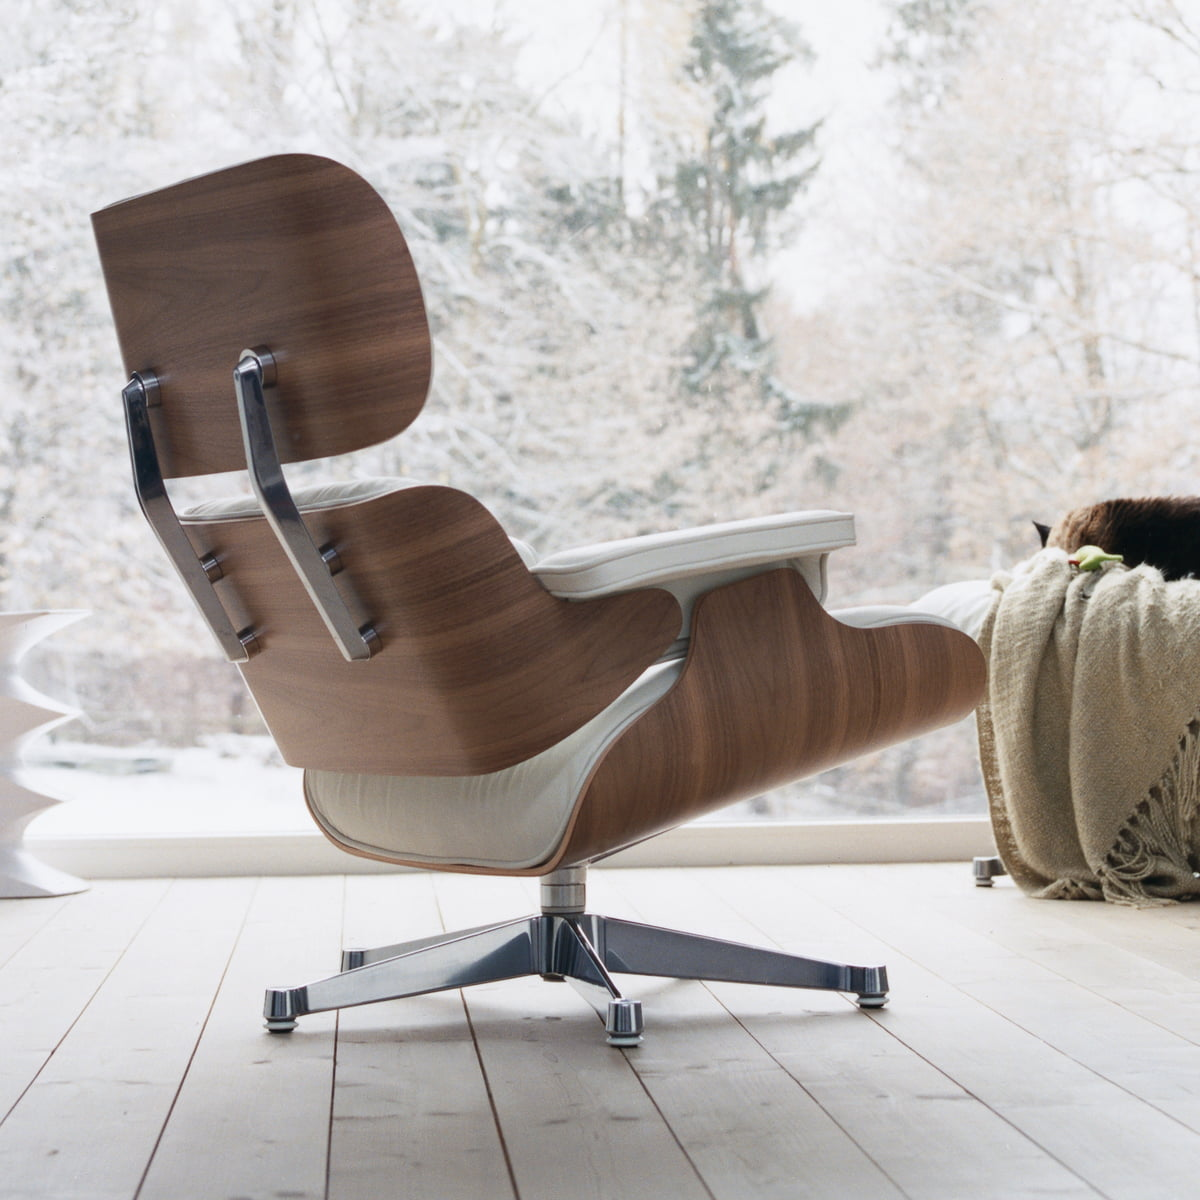 Vitra lounge chair amp ottoman white version von charles amp ray eames - Vitra Chair With Premium Leather And Comfortable Padding